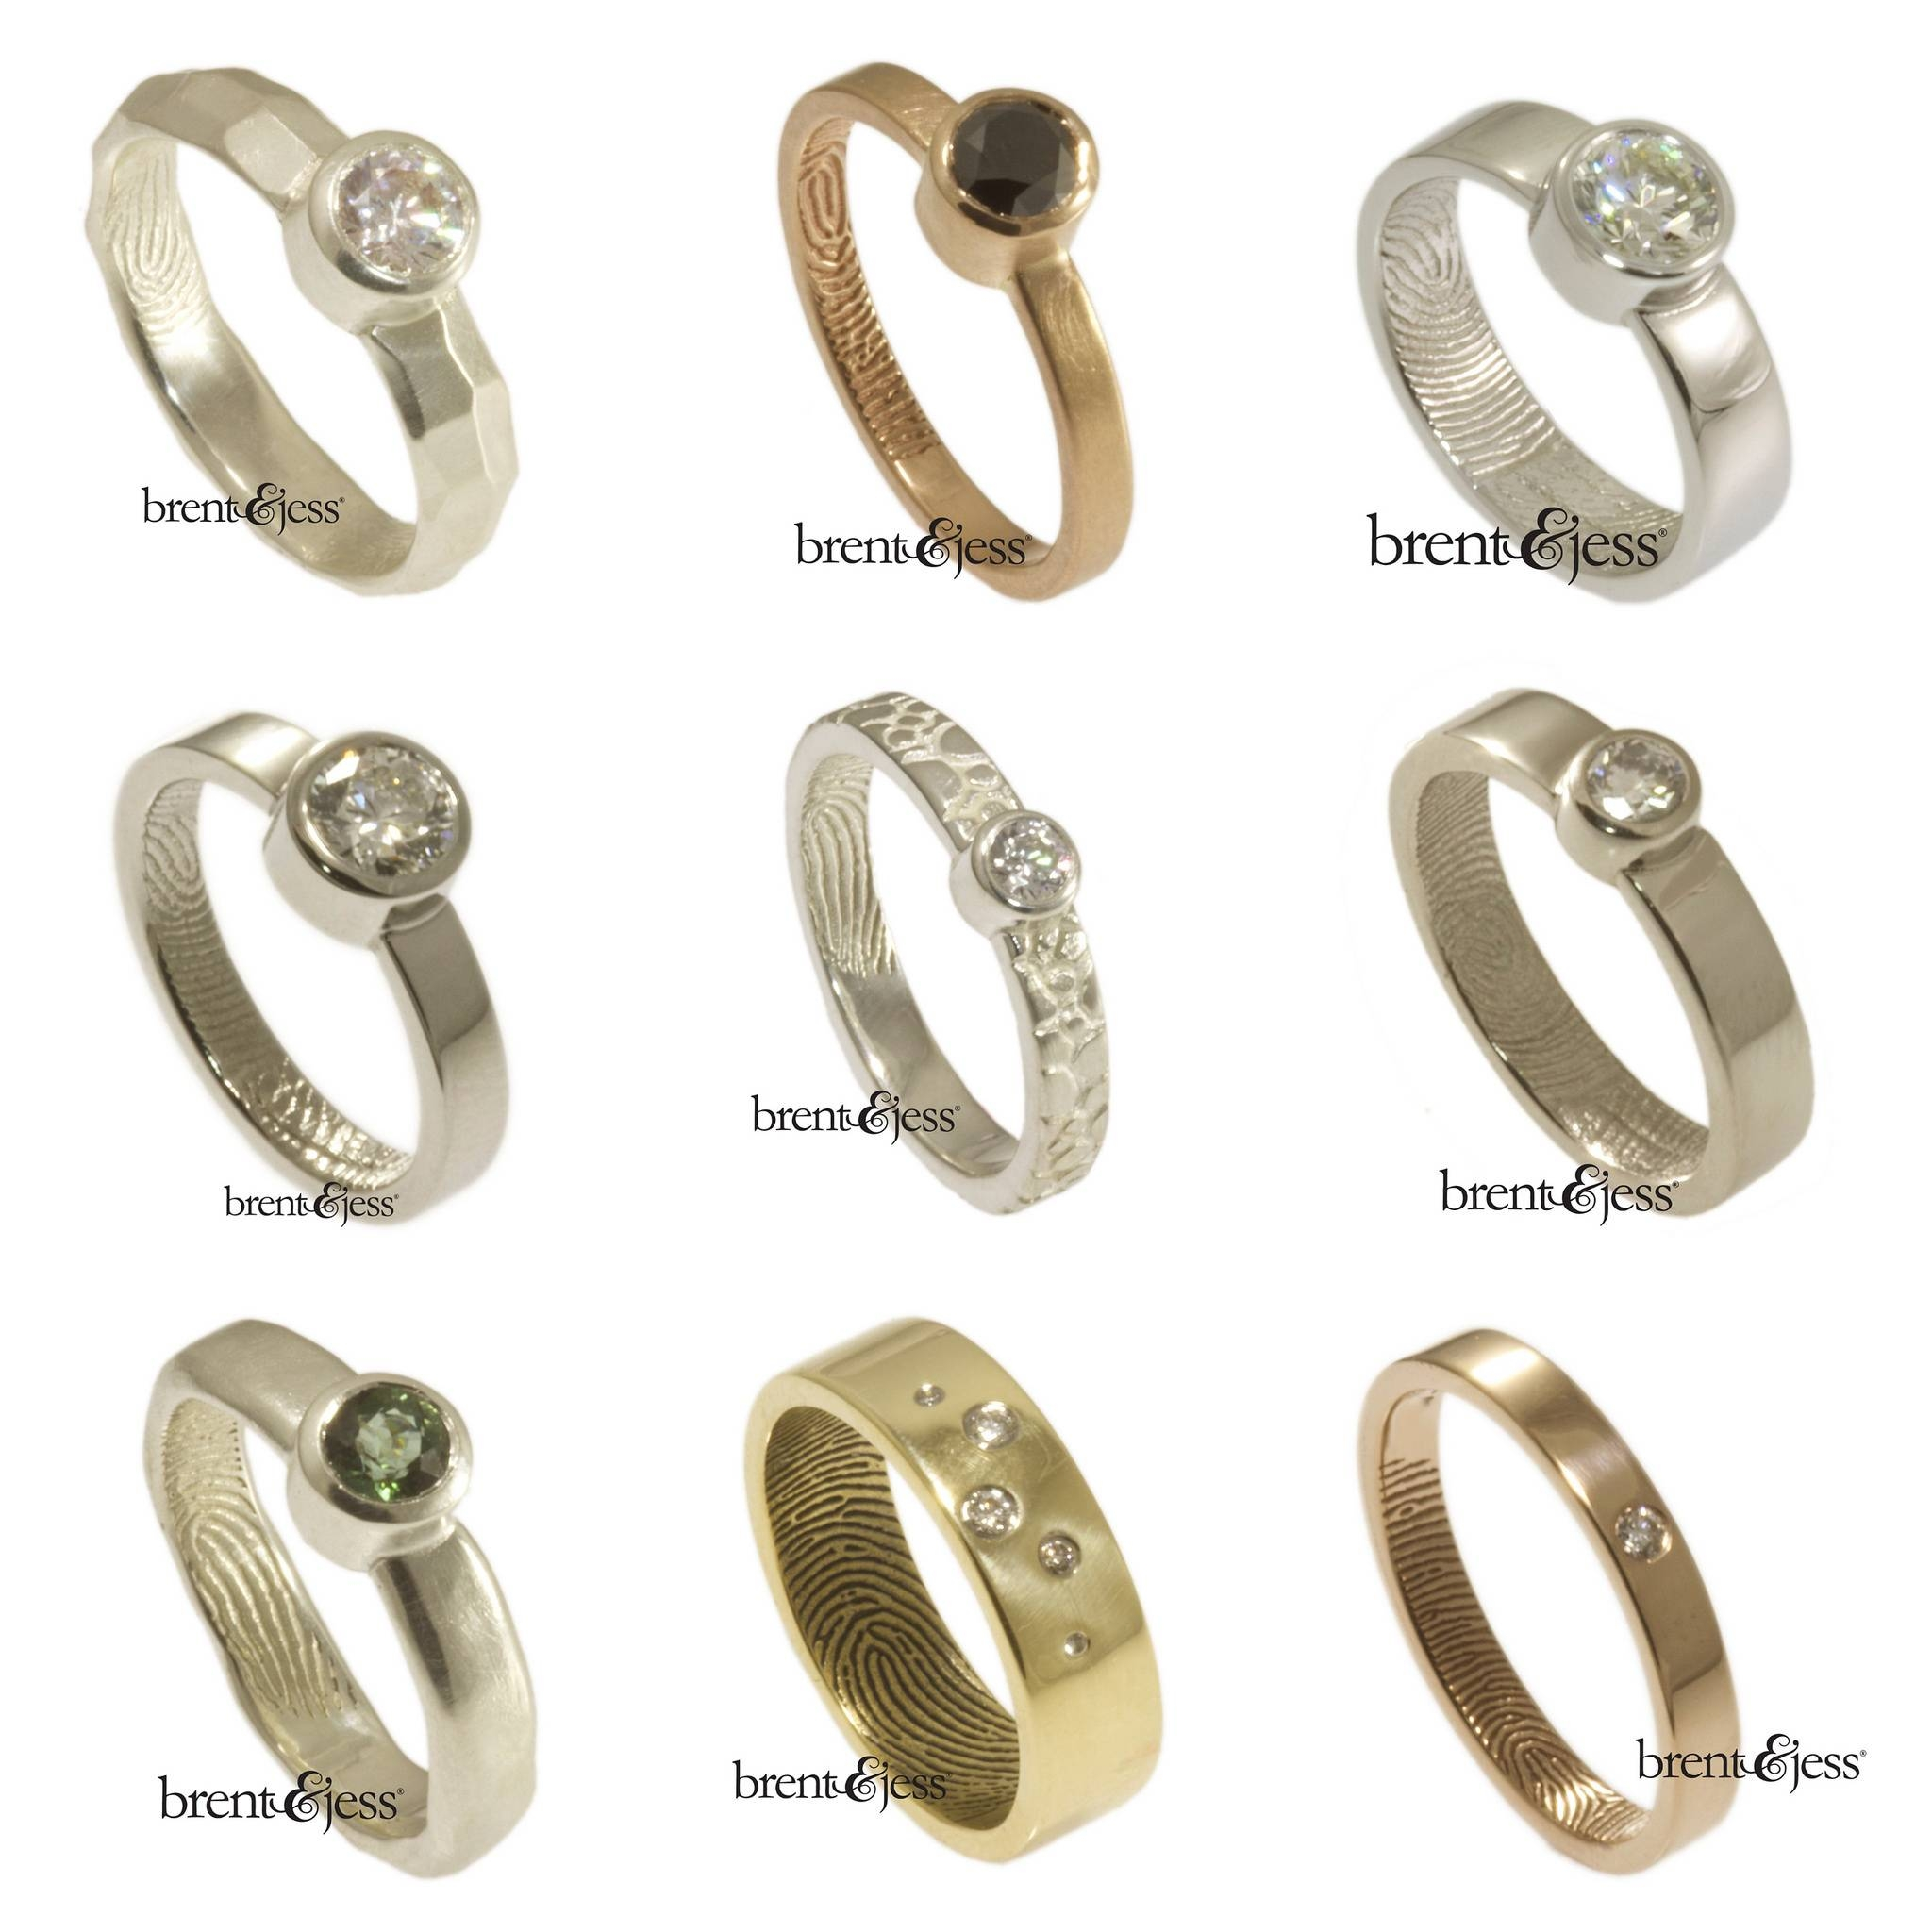 10 Non Traditional Engagement Rings For Under $1k | A Practical In Untraditional Wedding Bands (View 6 of 15)